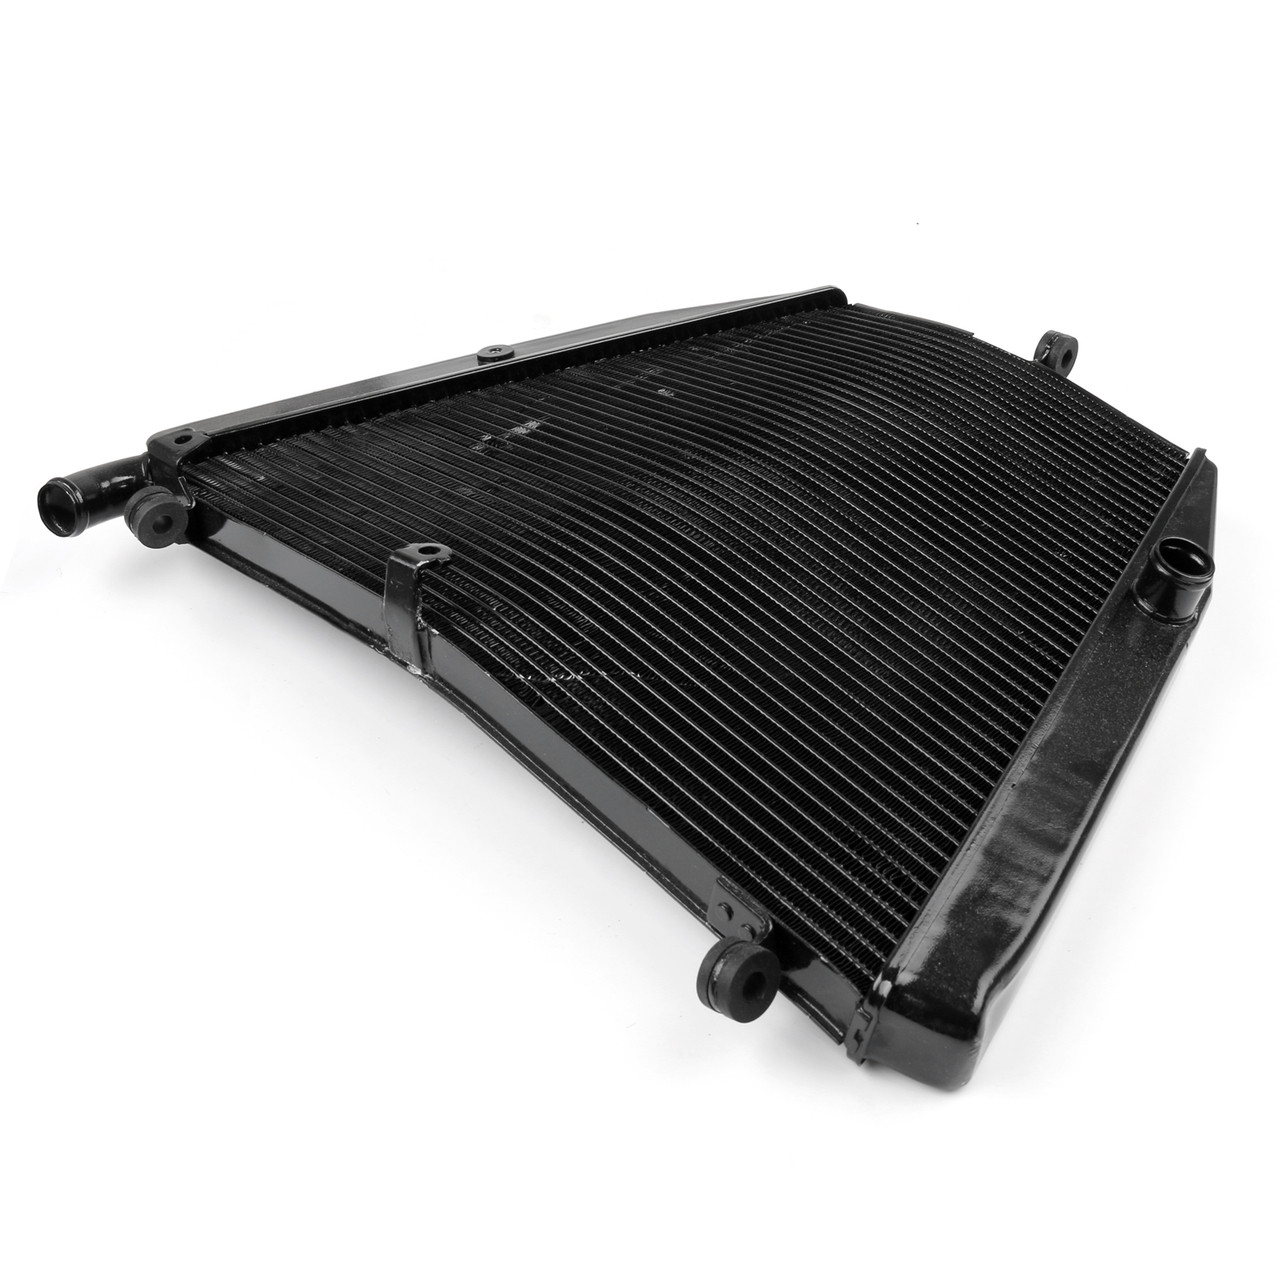 Radiator for Honda CBR 1000 RR (2006-2007) 19010-MEL-D21